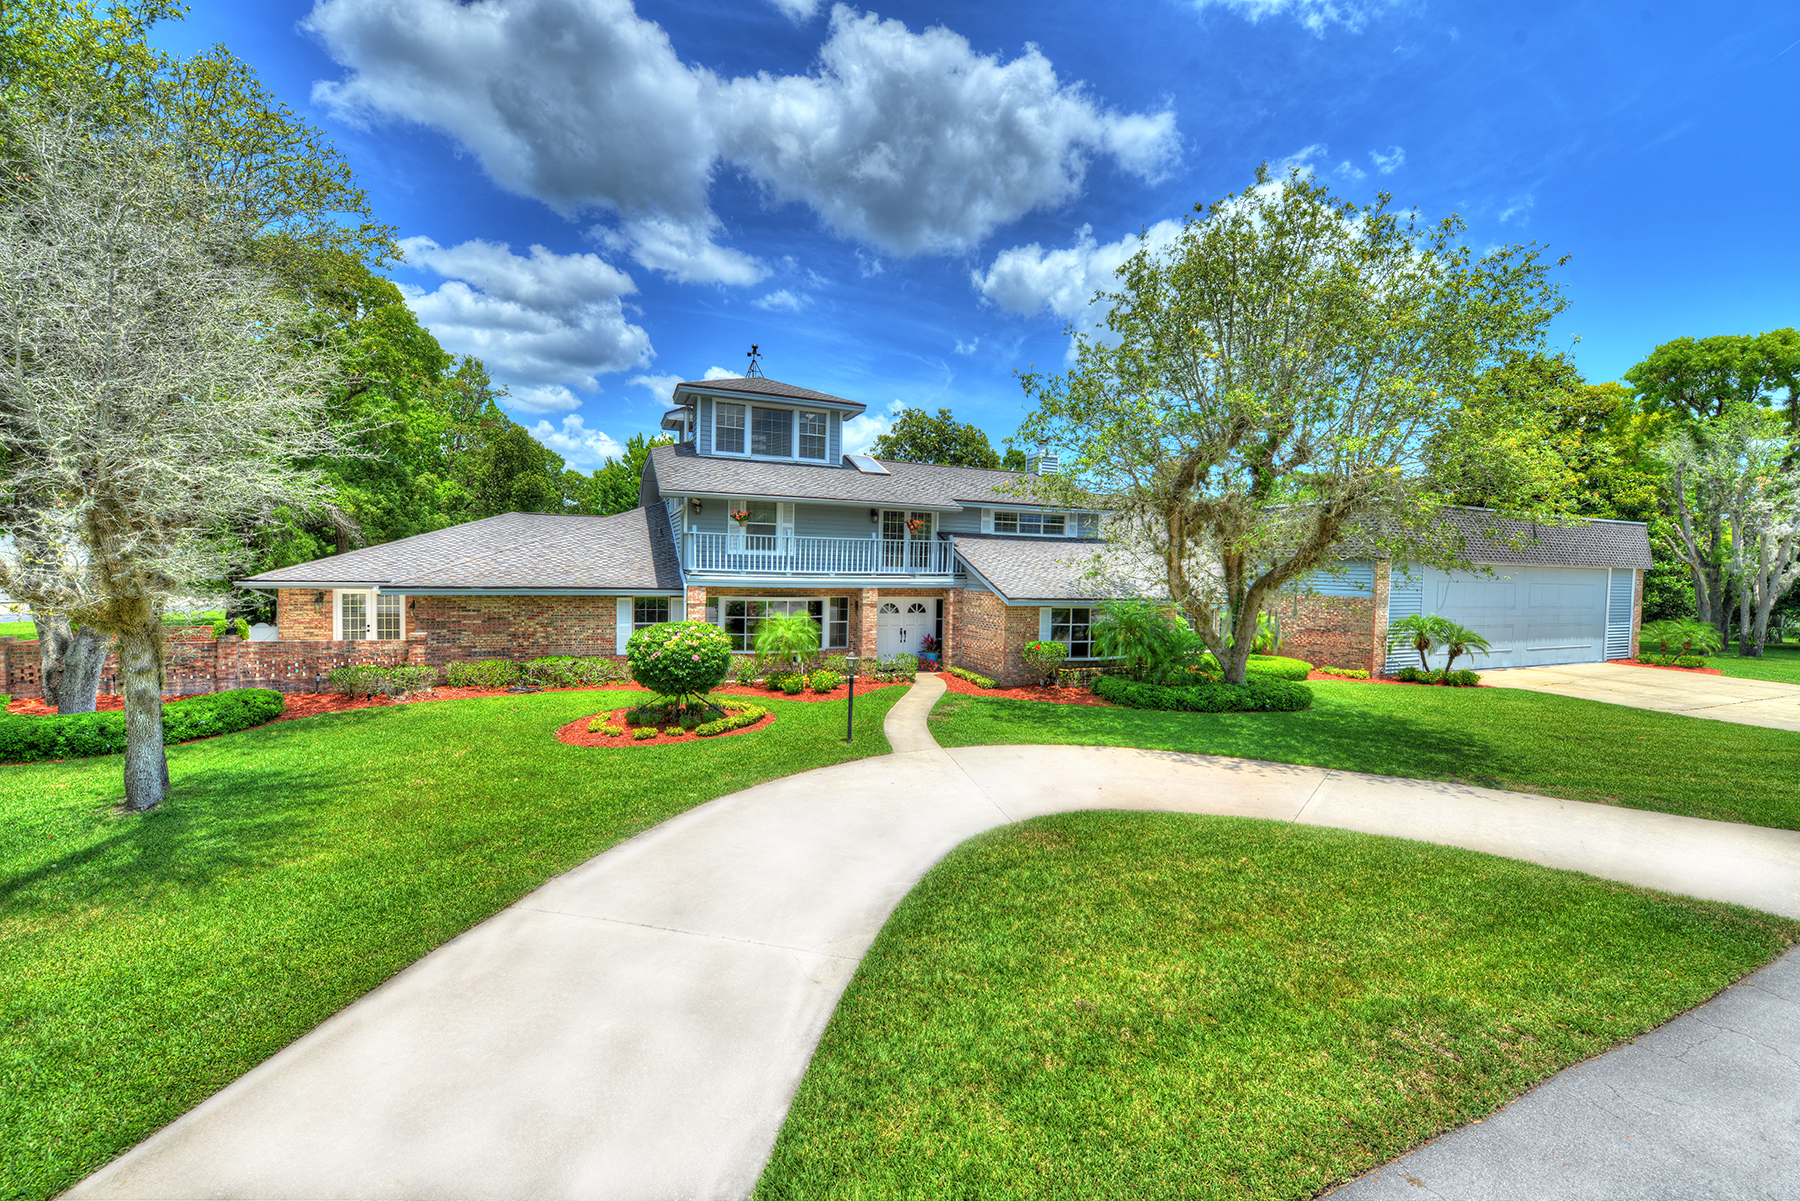 Single Family Home for Sale at SPRUCE CREEK AND THE BEACHES 2550/2551 Cross Country Dr, Port Orange, Florida 32128 United States